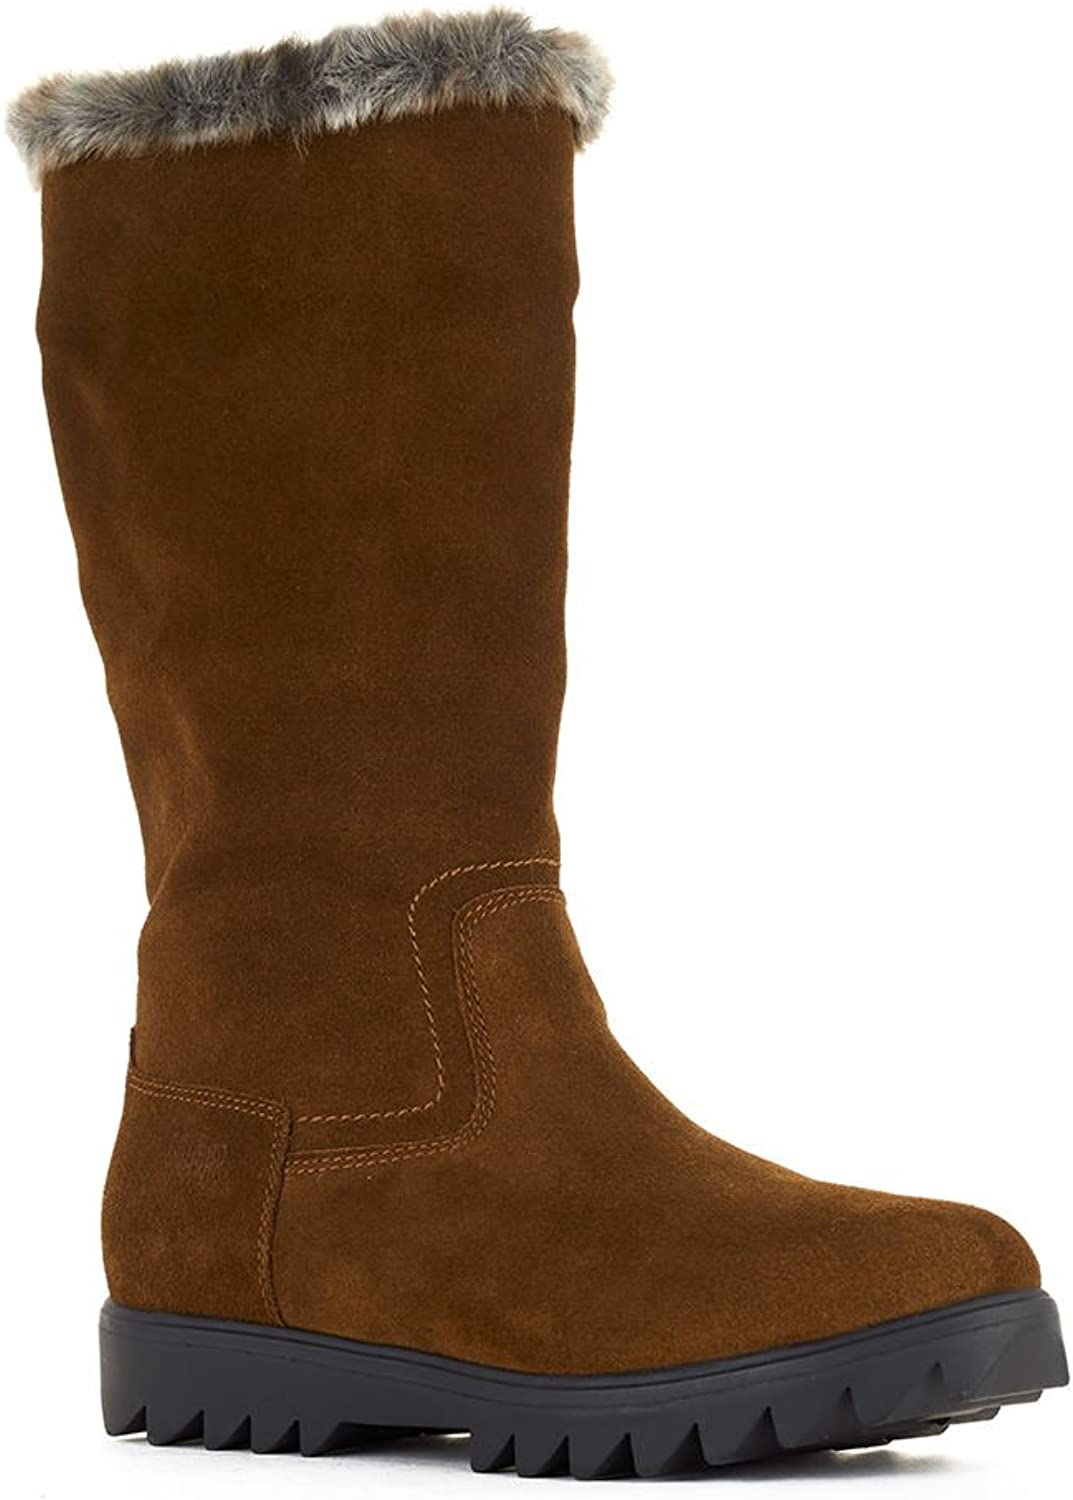 Cougar Women's Zephyr Suede Faux Fur Waterproof Winter Snow Boots Brown Size 11